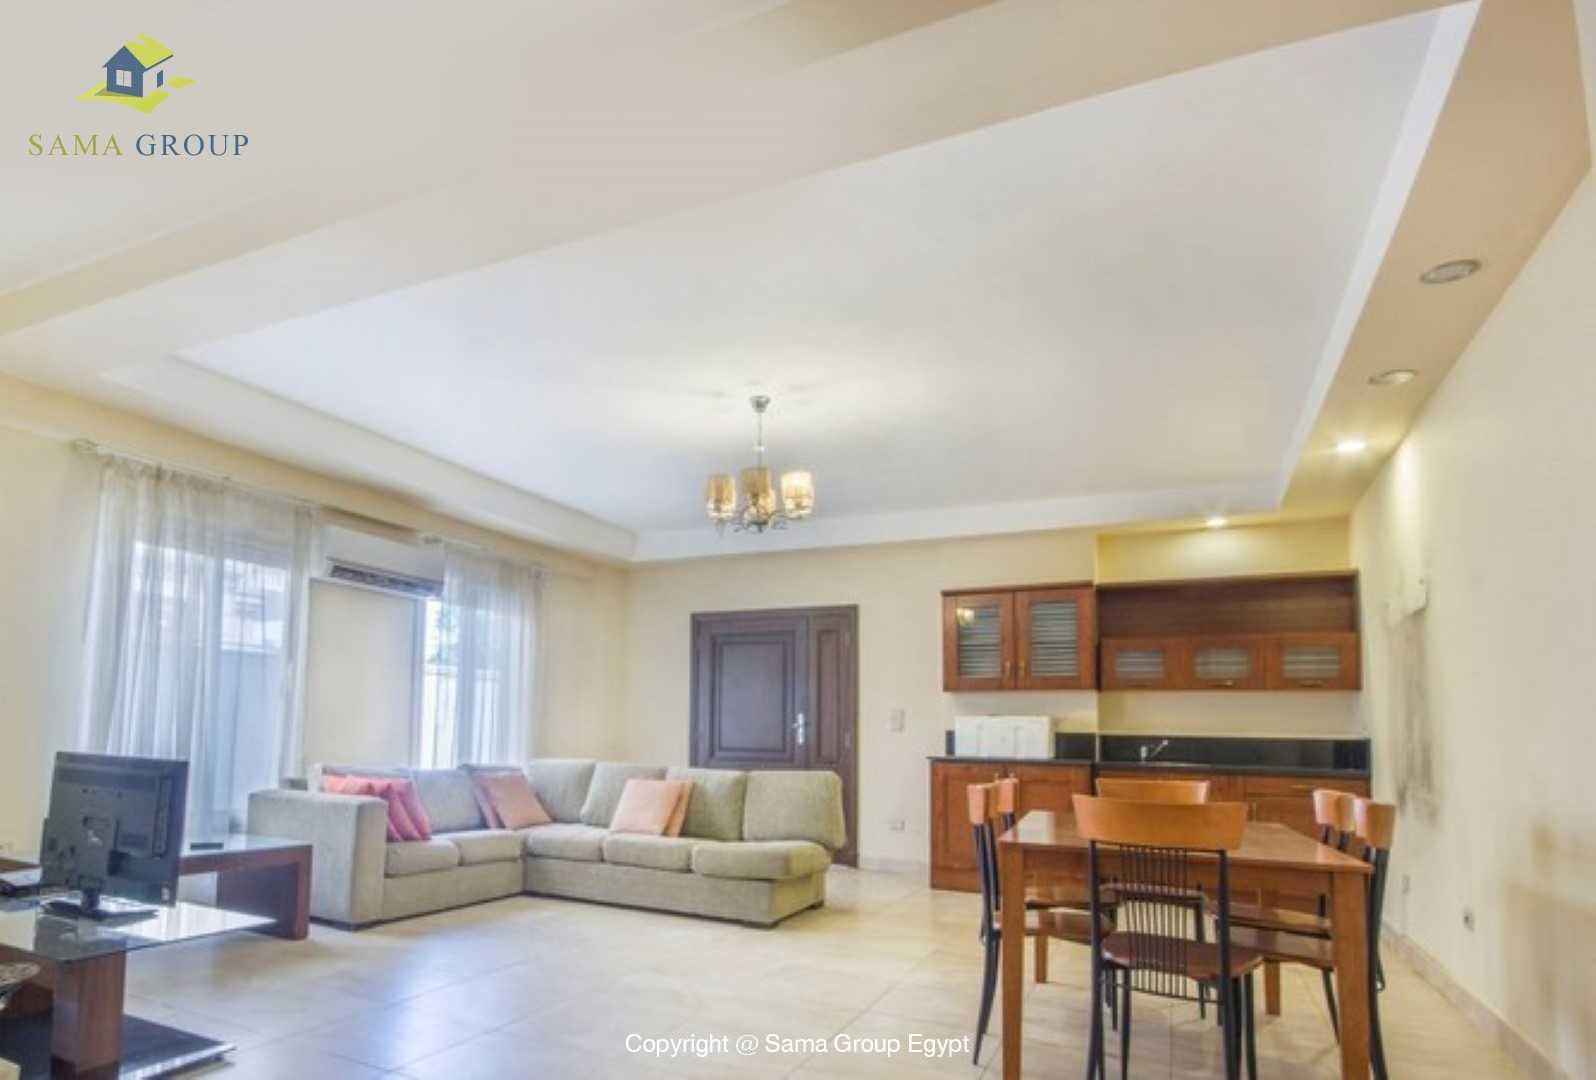 Apartment Duplex For Rent In New Cairo